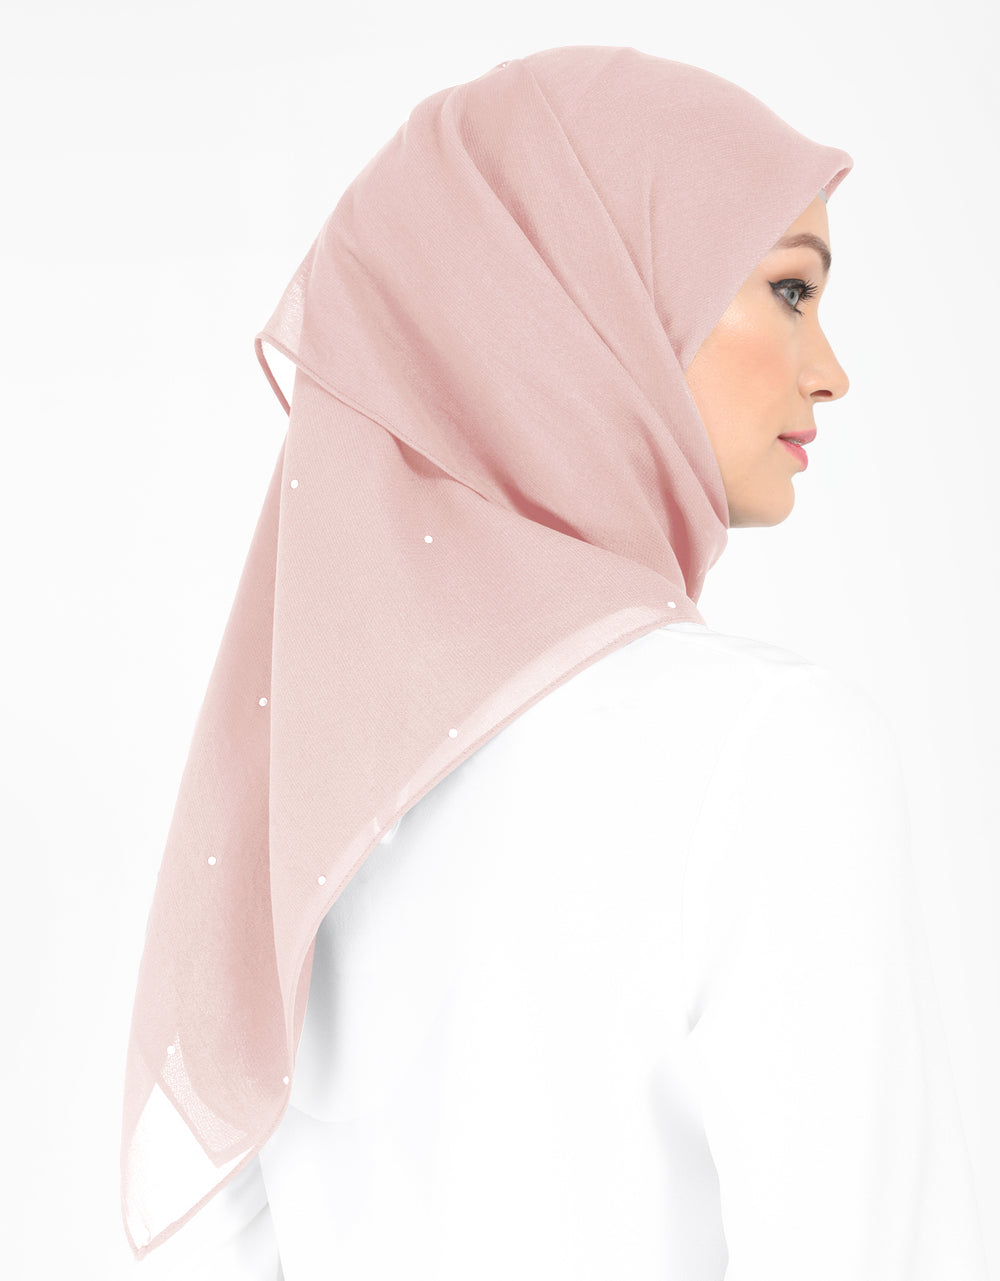 Chiffon Square Bawal With Stone Col. 13 (Dusty Pink)